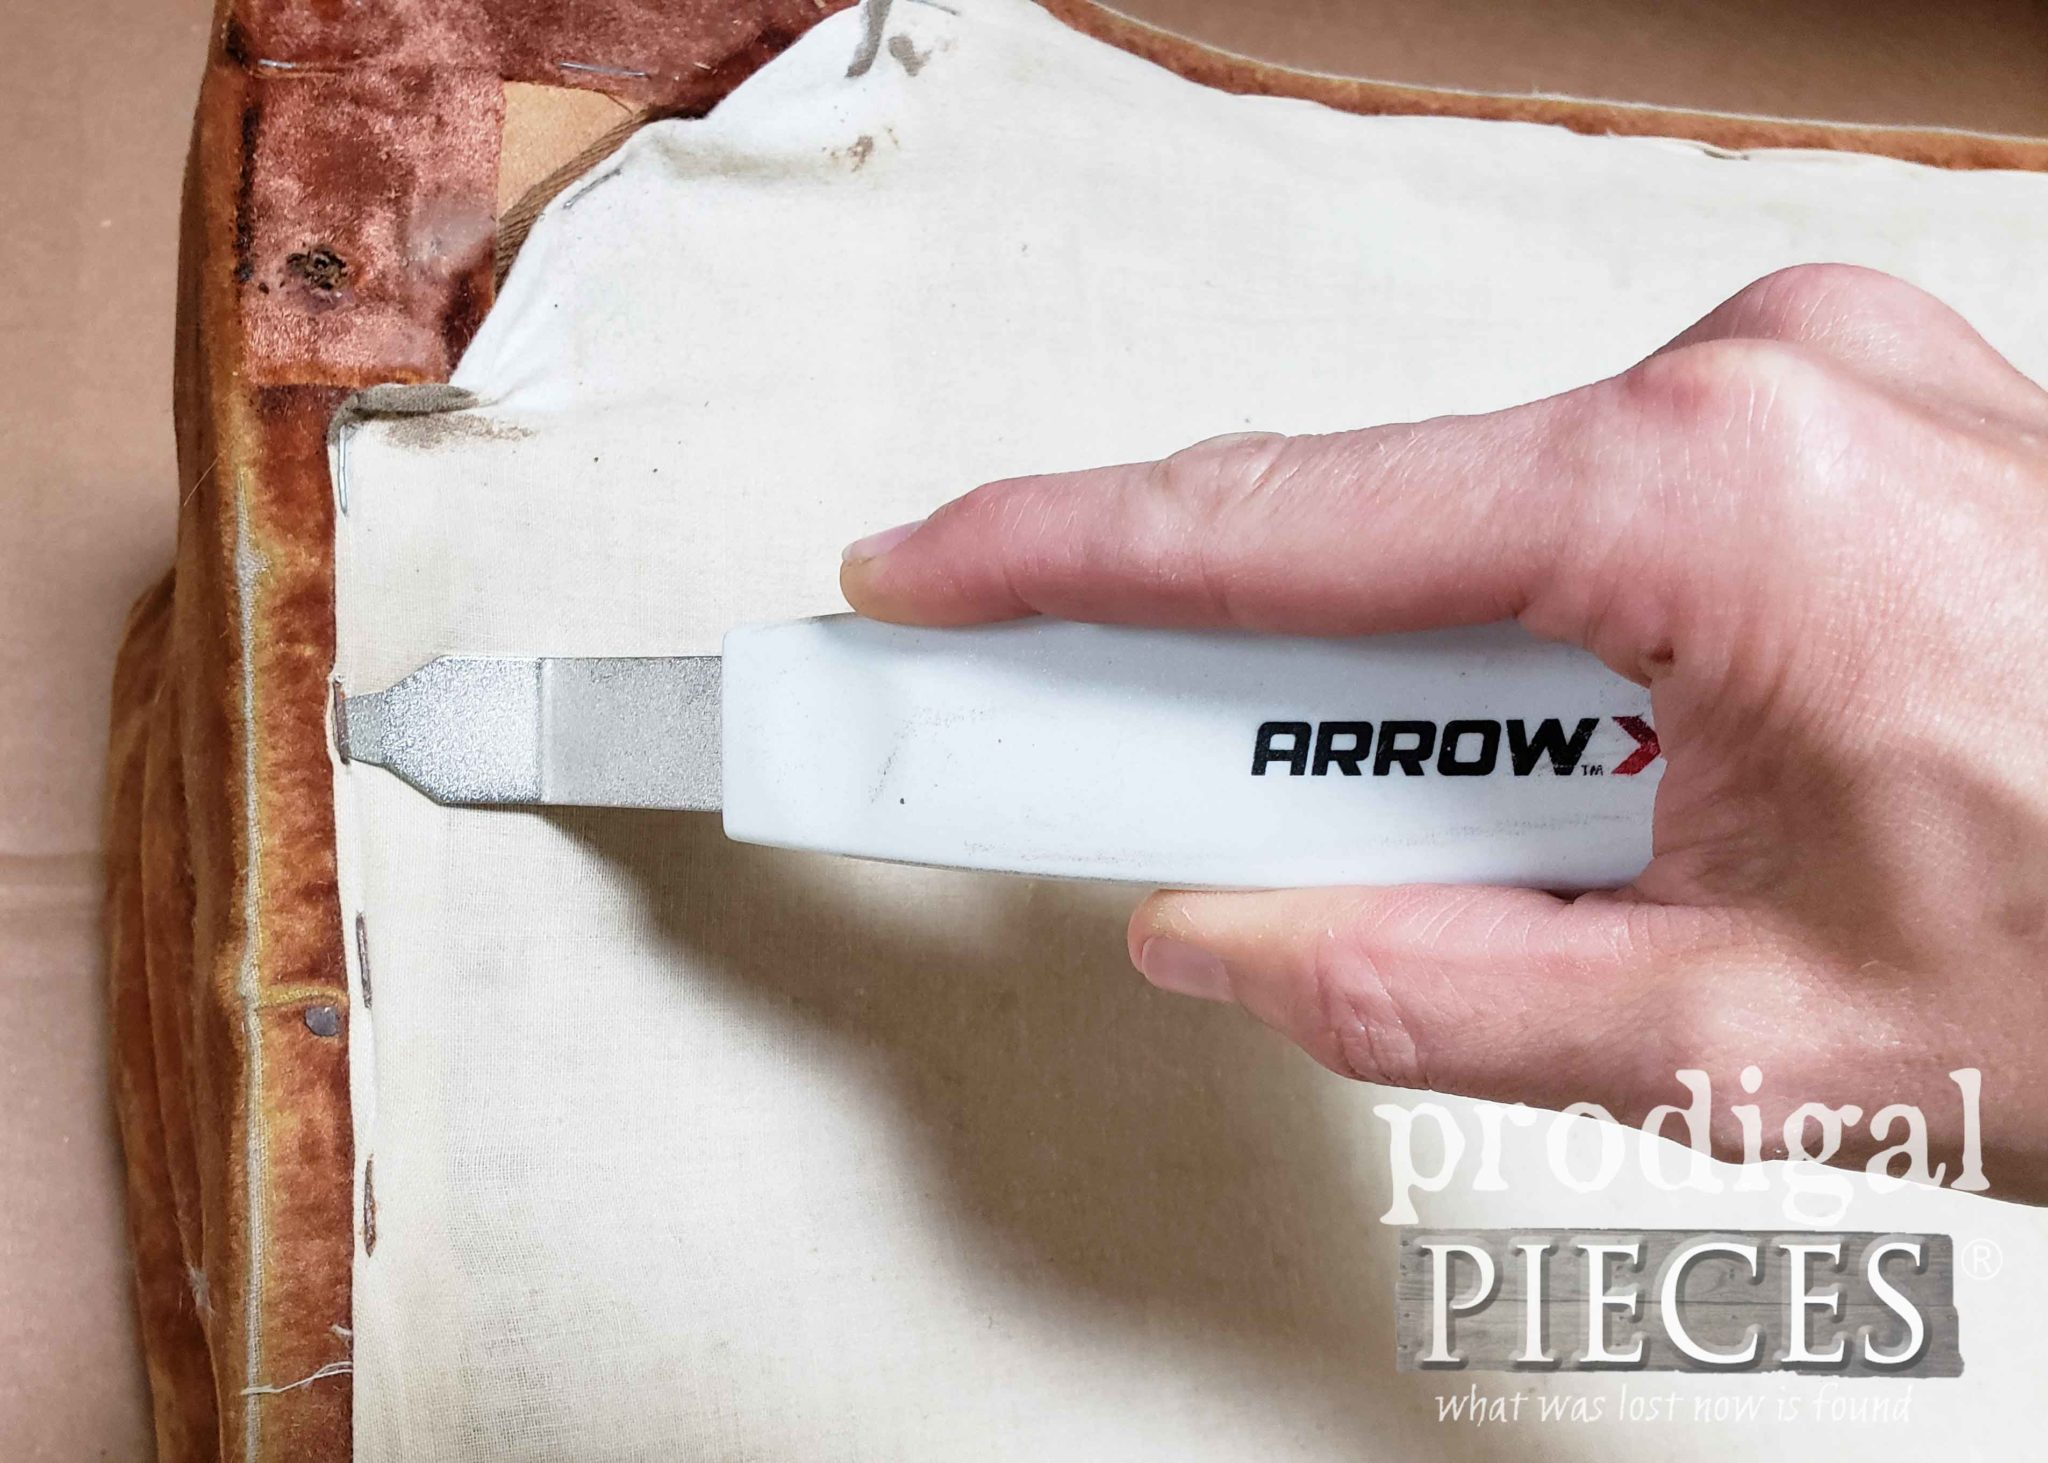 Arrow Staple Puller to Remove Upholstery Staples | prodigalpieces.com